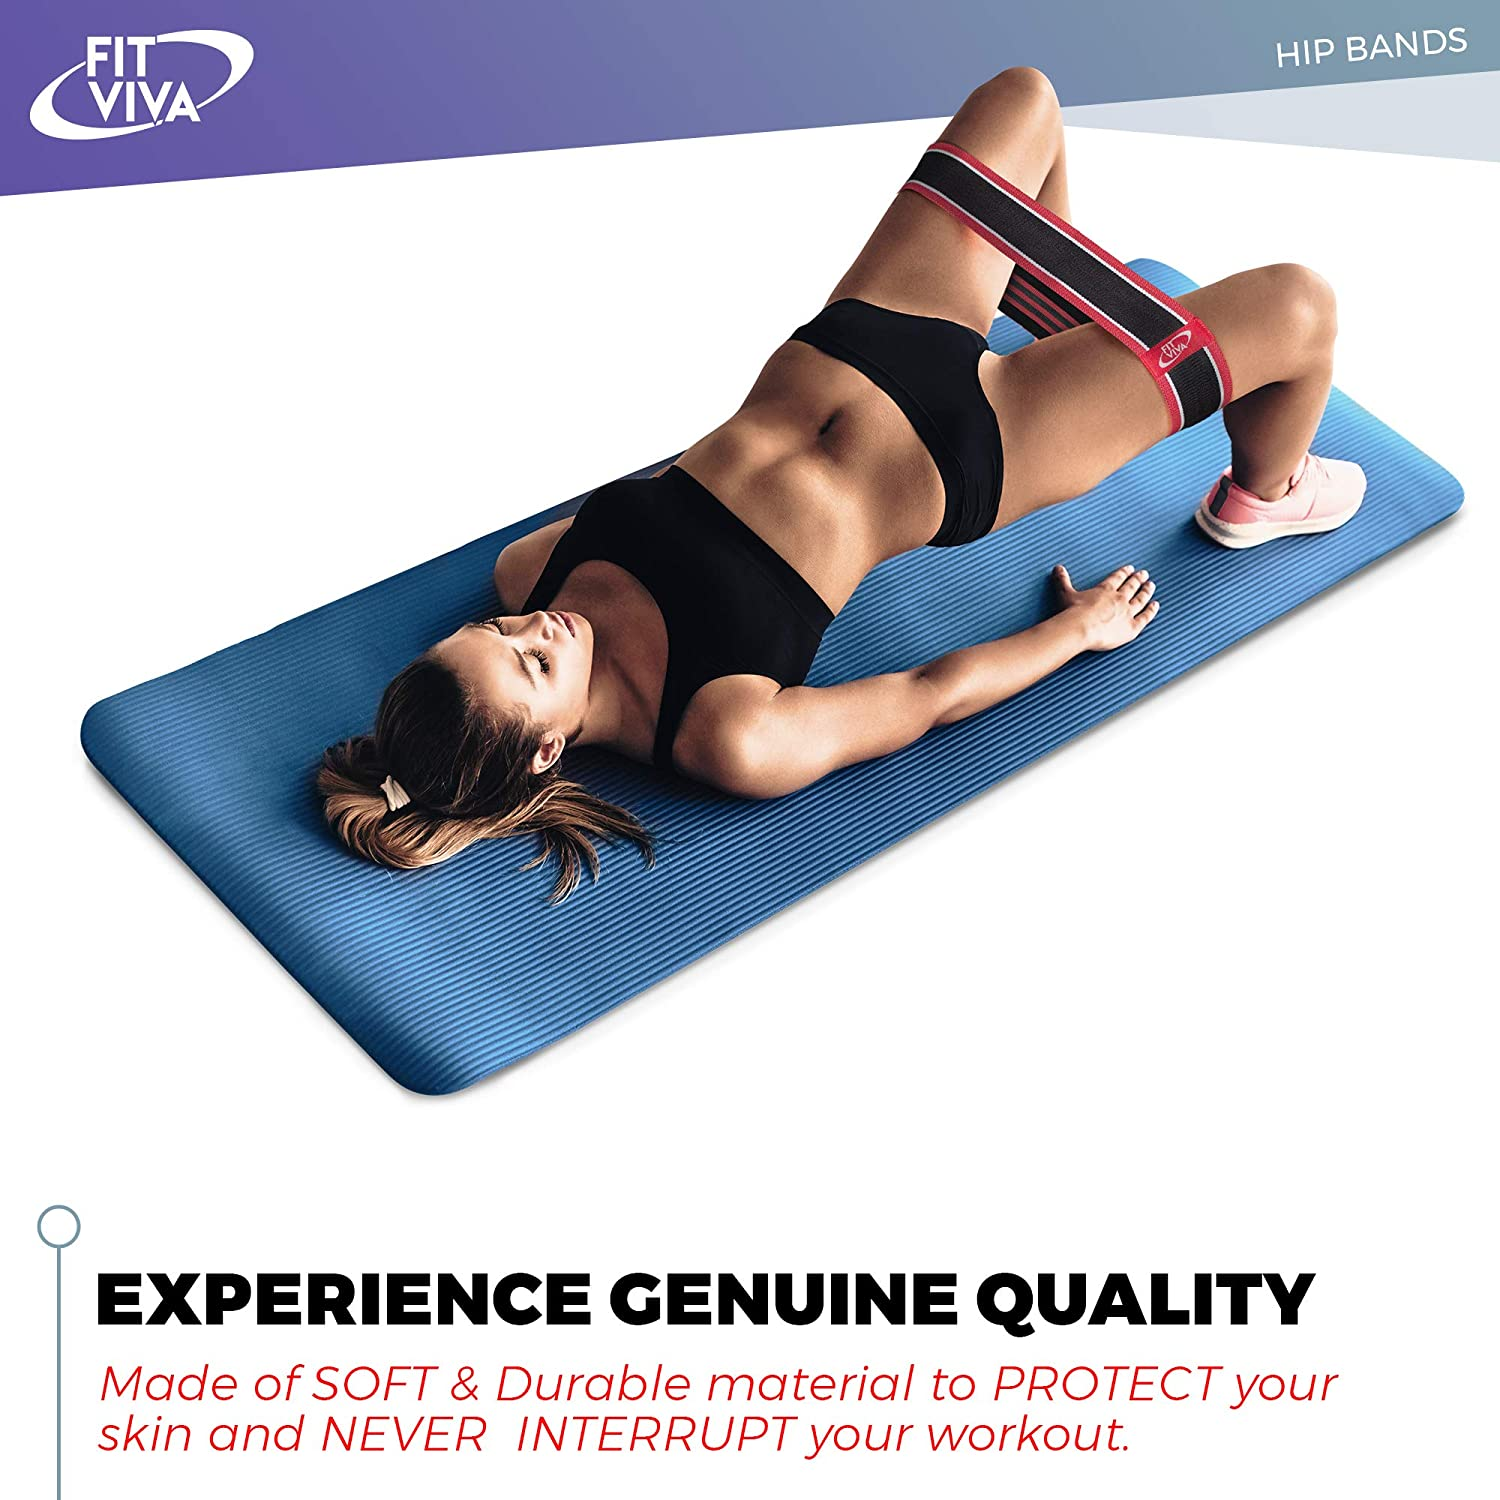 Fabric Resistance Bands Set - Booty Hip Bands for Legs, Shoulders and Arms  Exercises - Perfect for Fitness, Glute or Squat Workout - 3 Non-Rolling